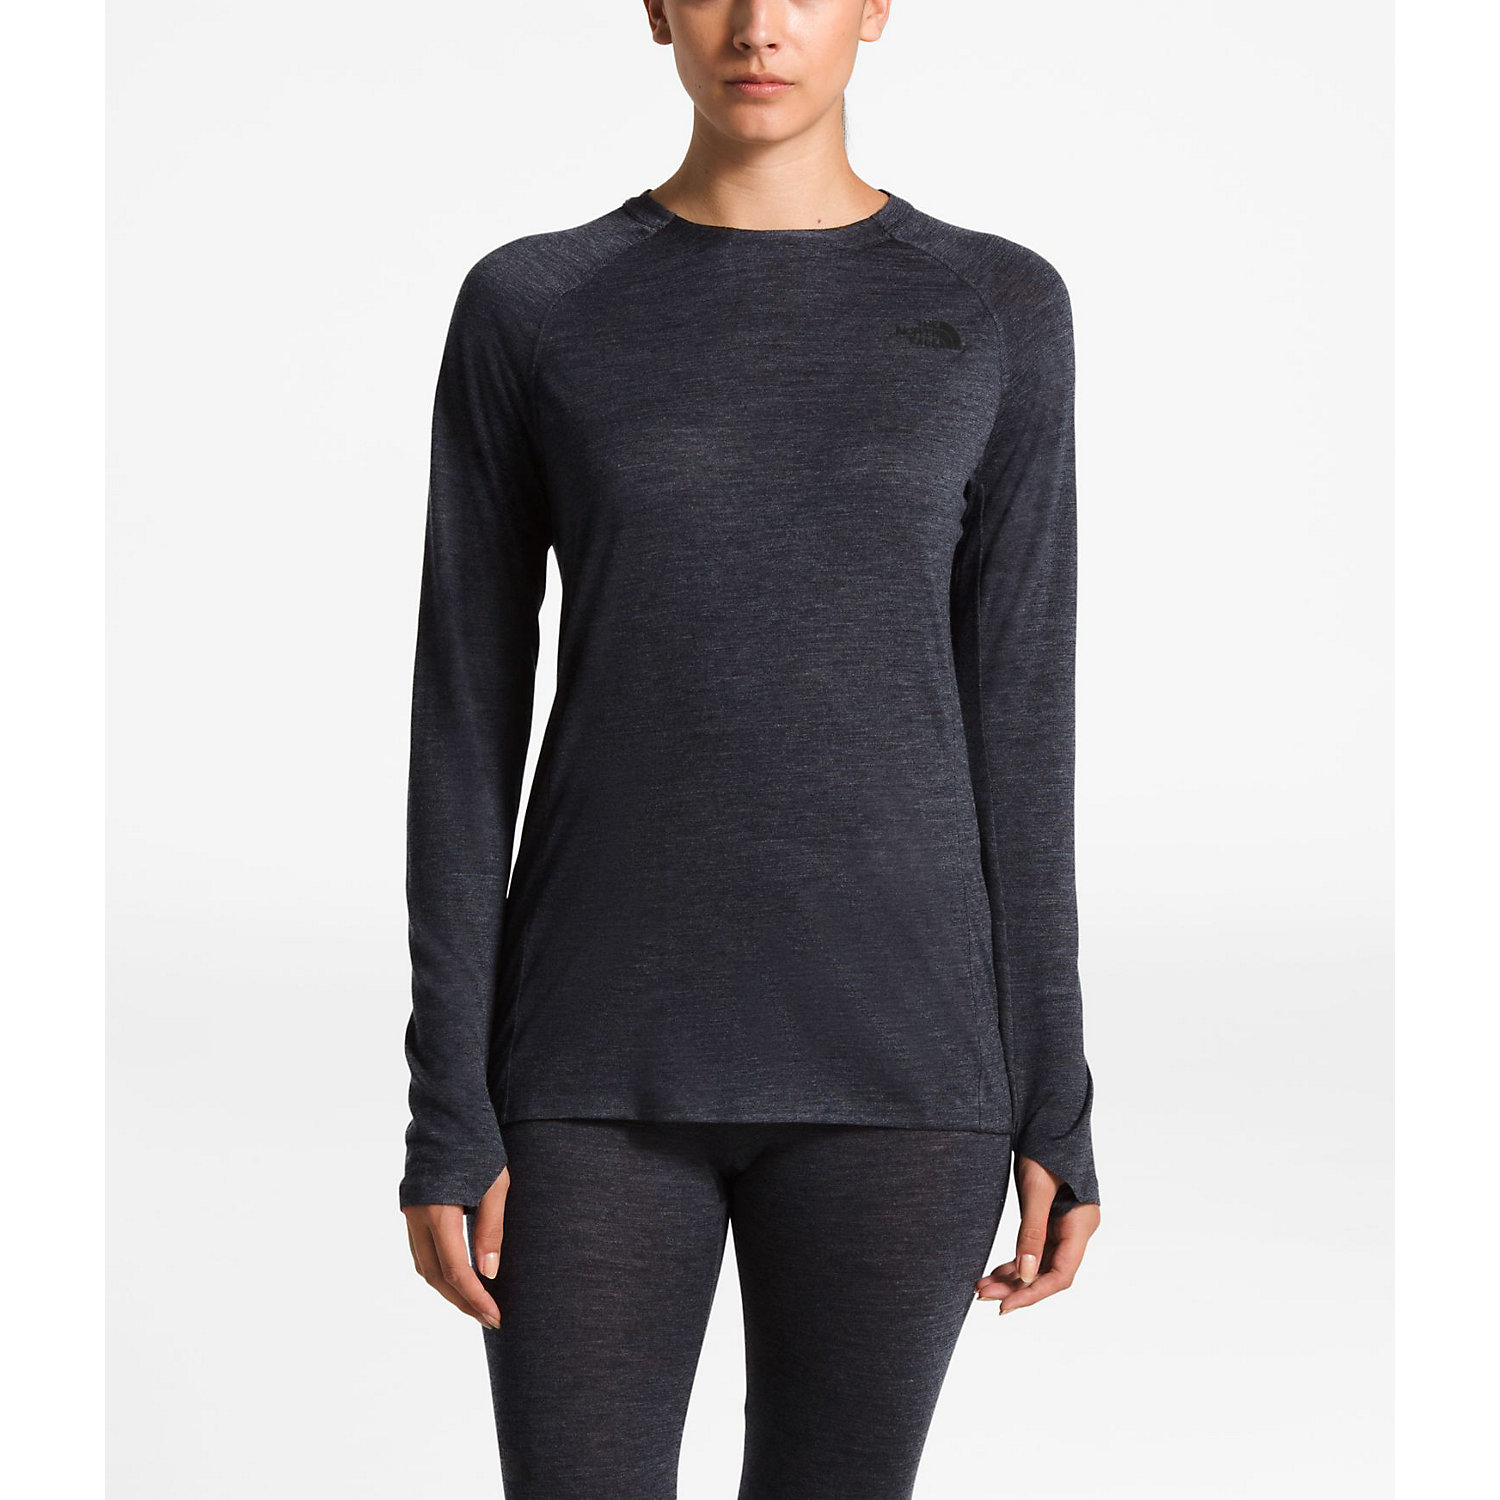 c943e8783 The North Face Women's Wool HGR Baselayer L/S Crew Neck Top